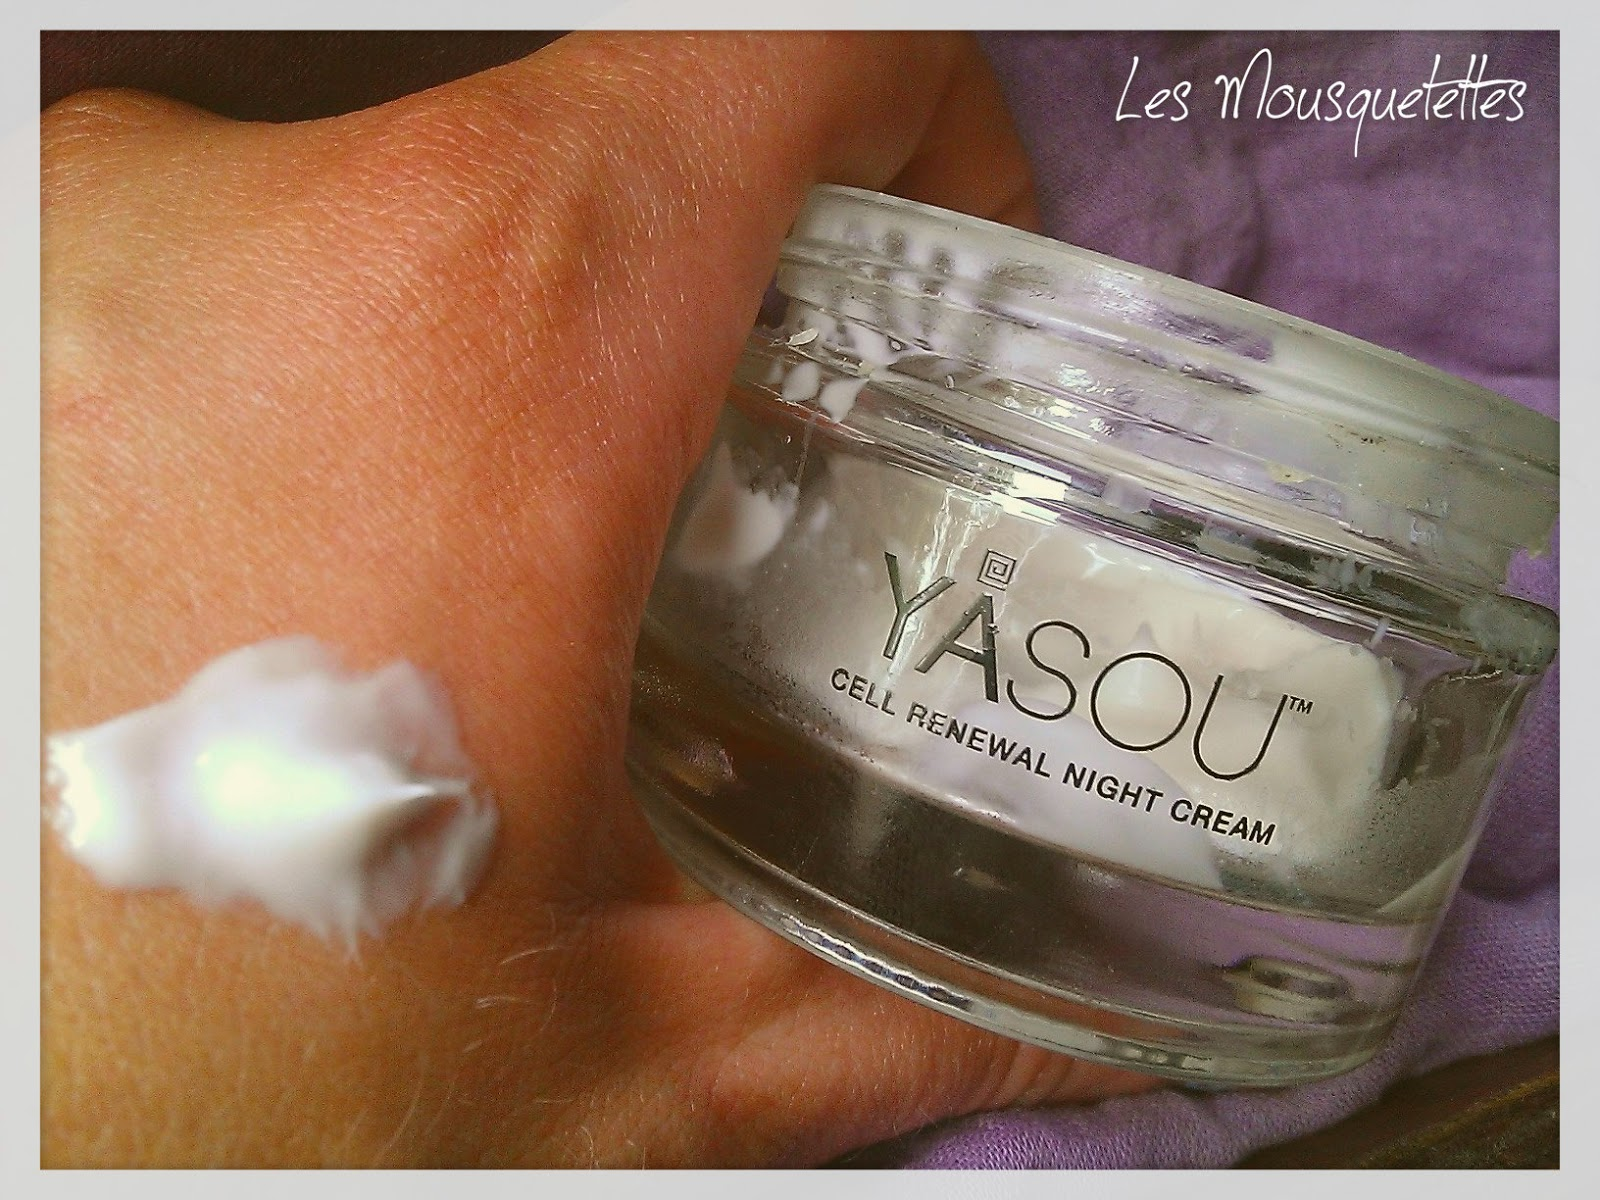 Cell Renewal Night Cream Yasou Skincare - Les Mousquetettes©